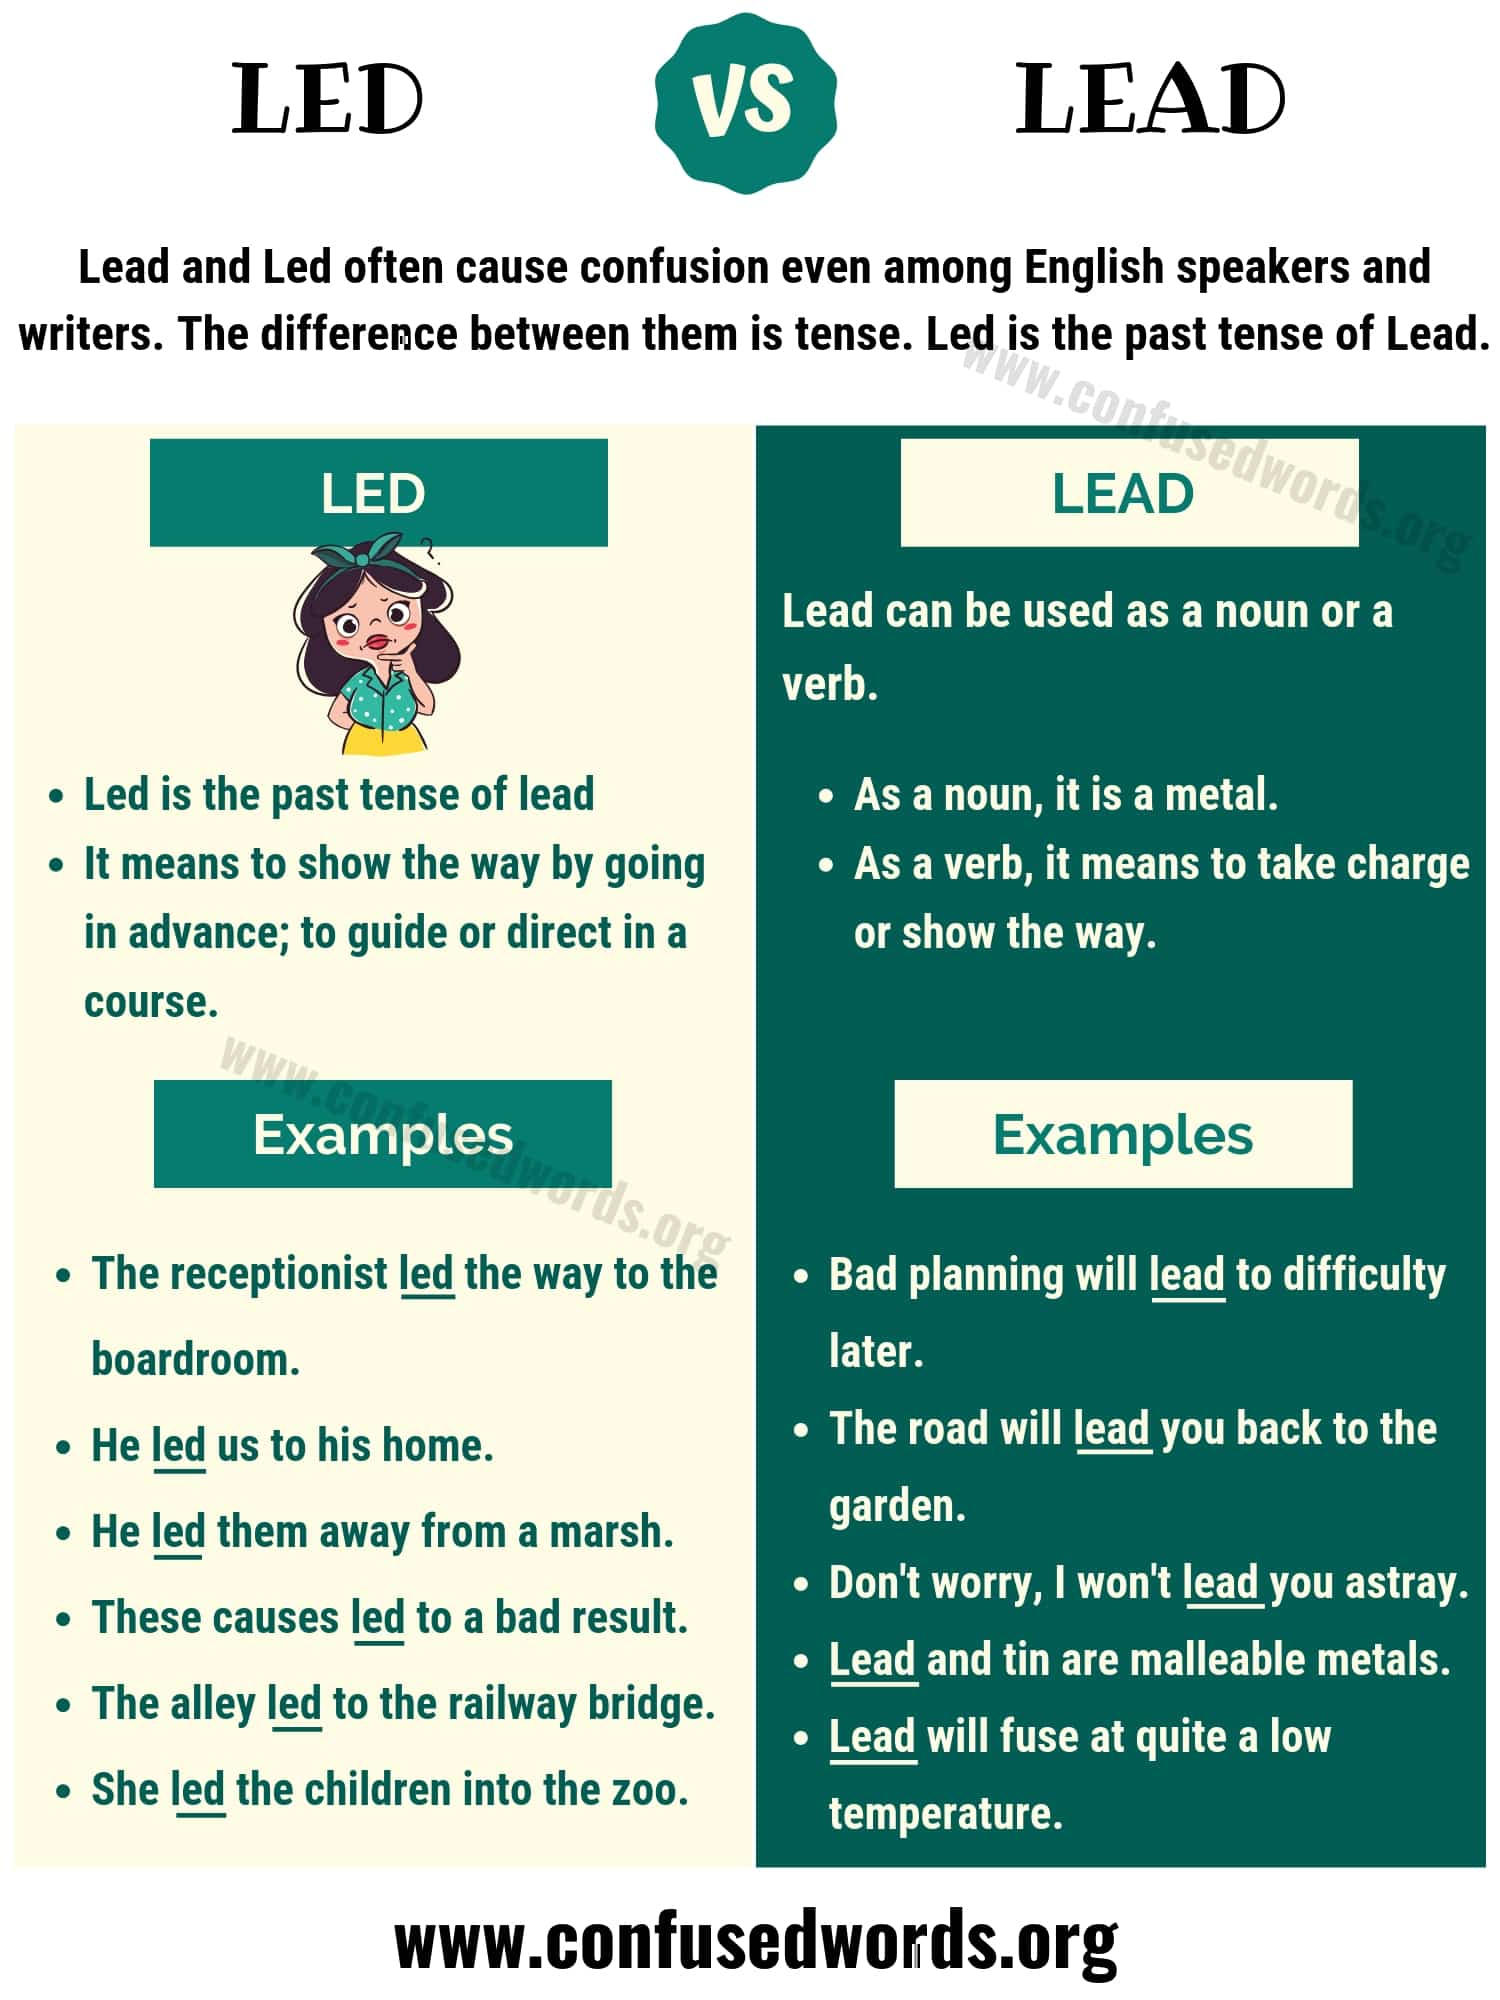 Led vs Lead